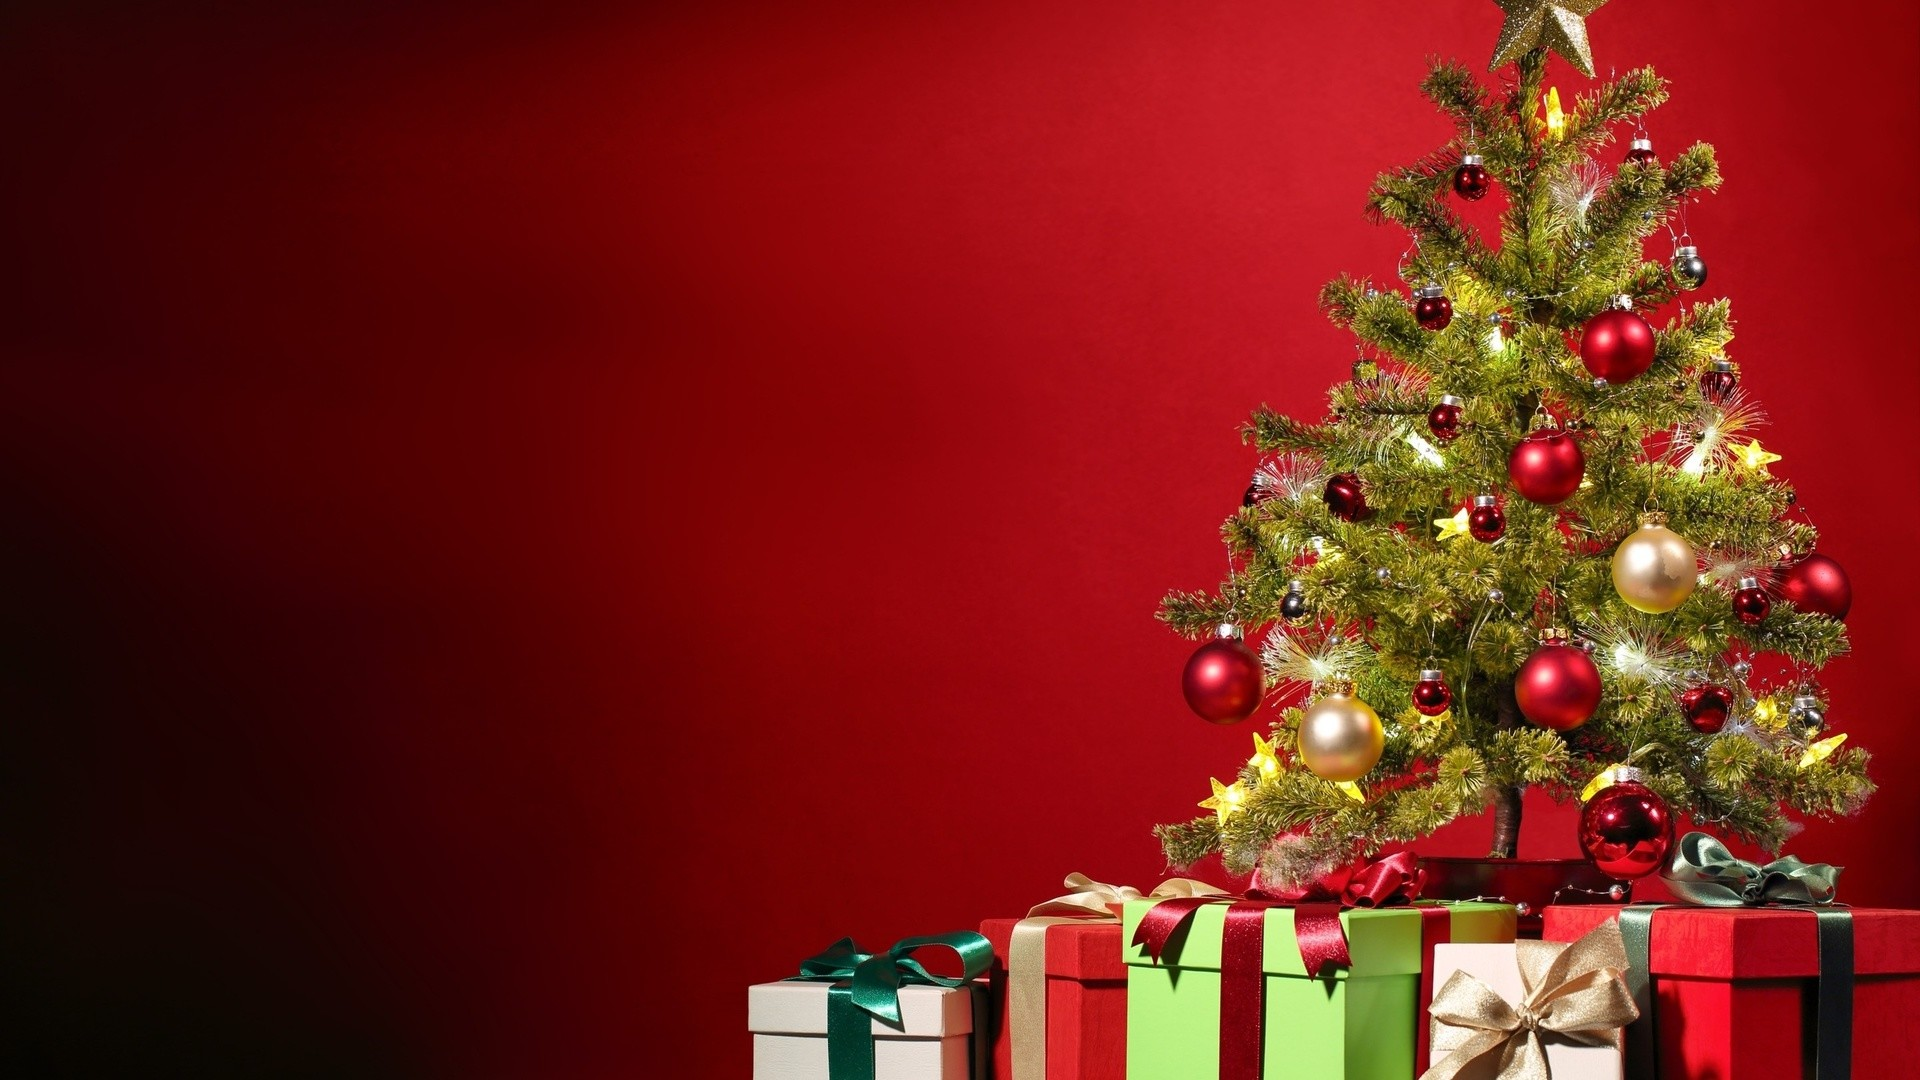 Christmas Background Images Download Clip Art 1920x1080